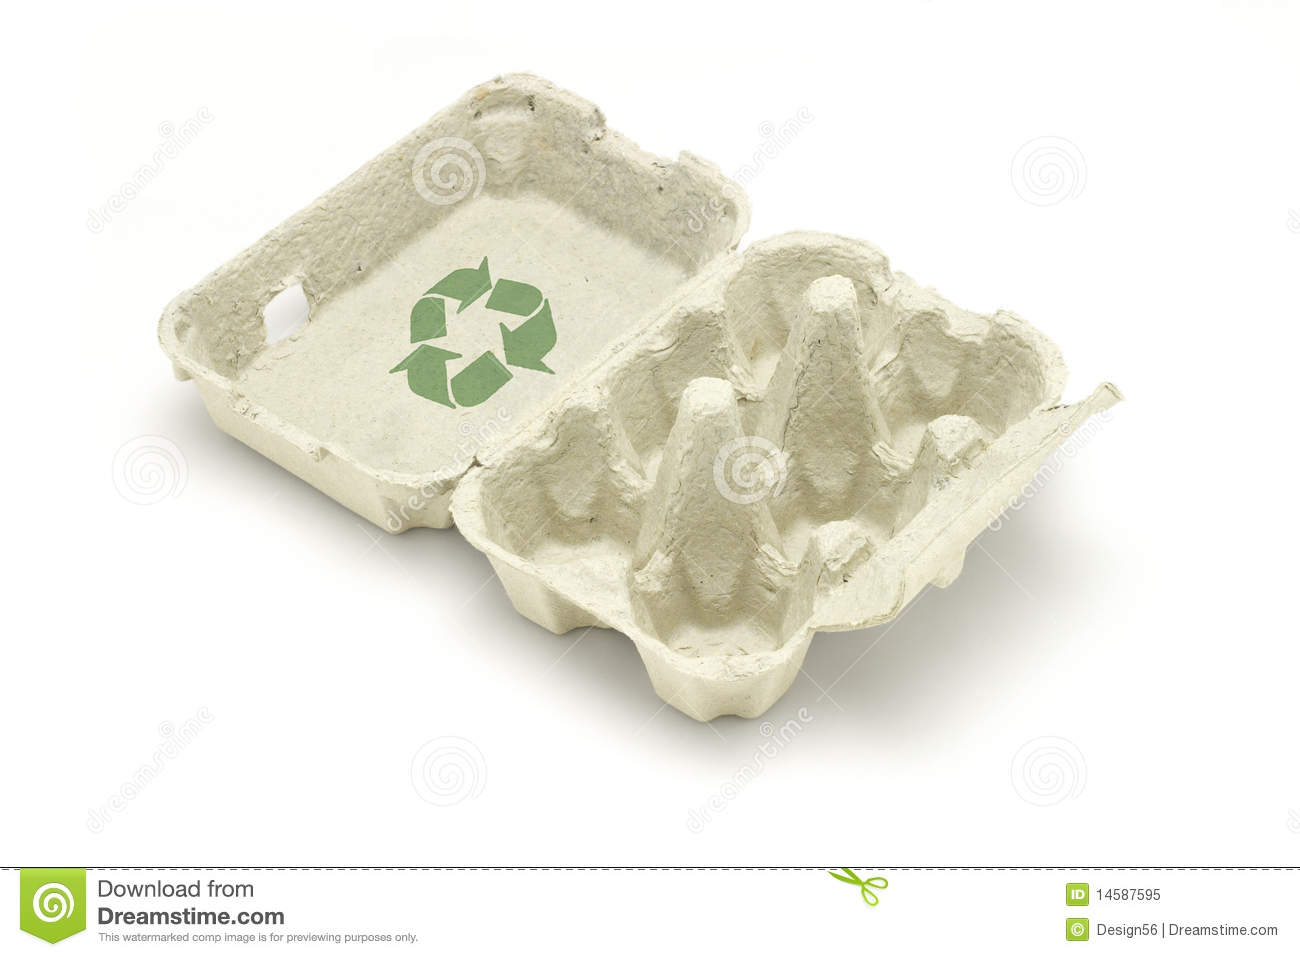 Recycle symbol on egg carton royalty free stock photo for How to recycle egg cartons